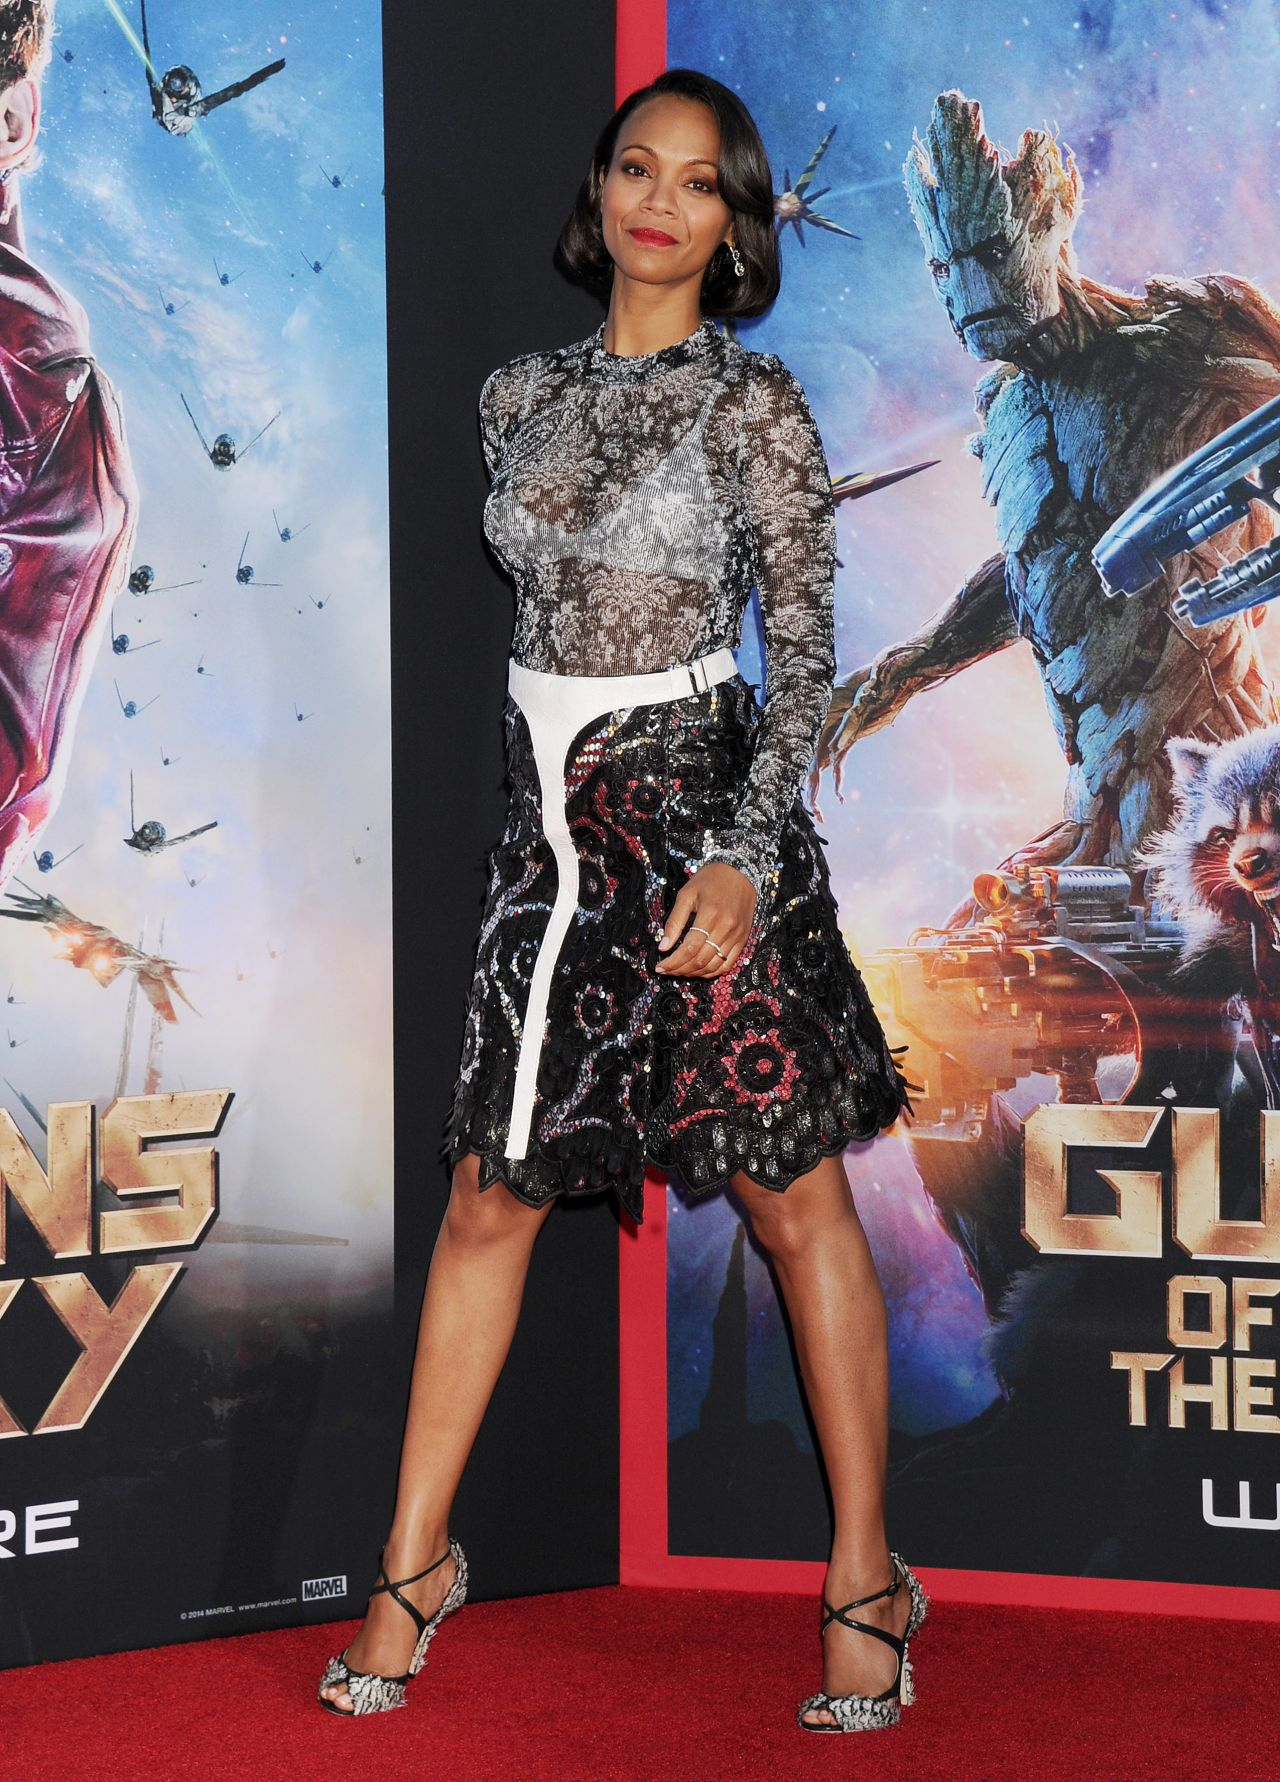 Zoe Saldana Guardians Of The Galaxy World Premiere In